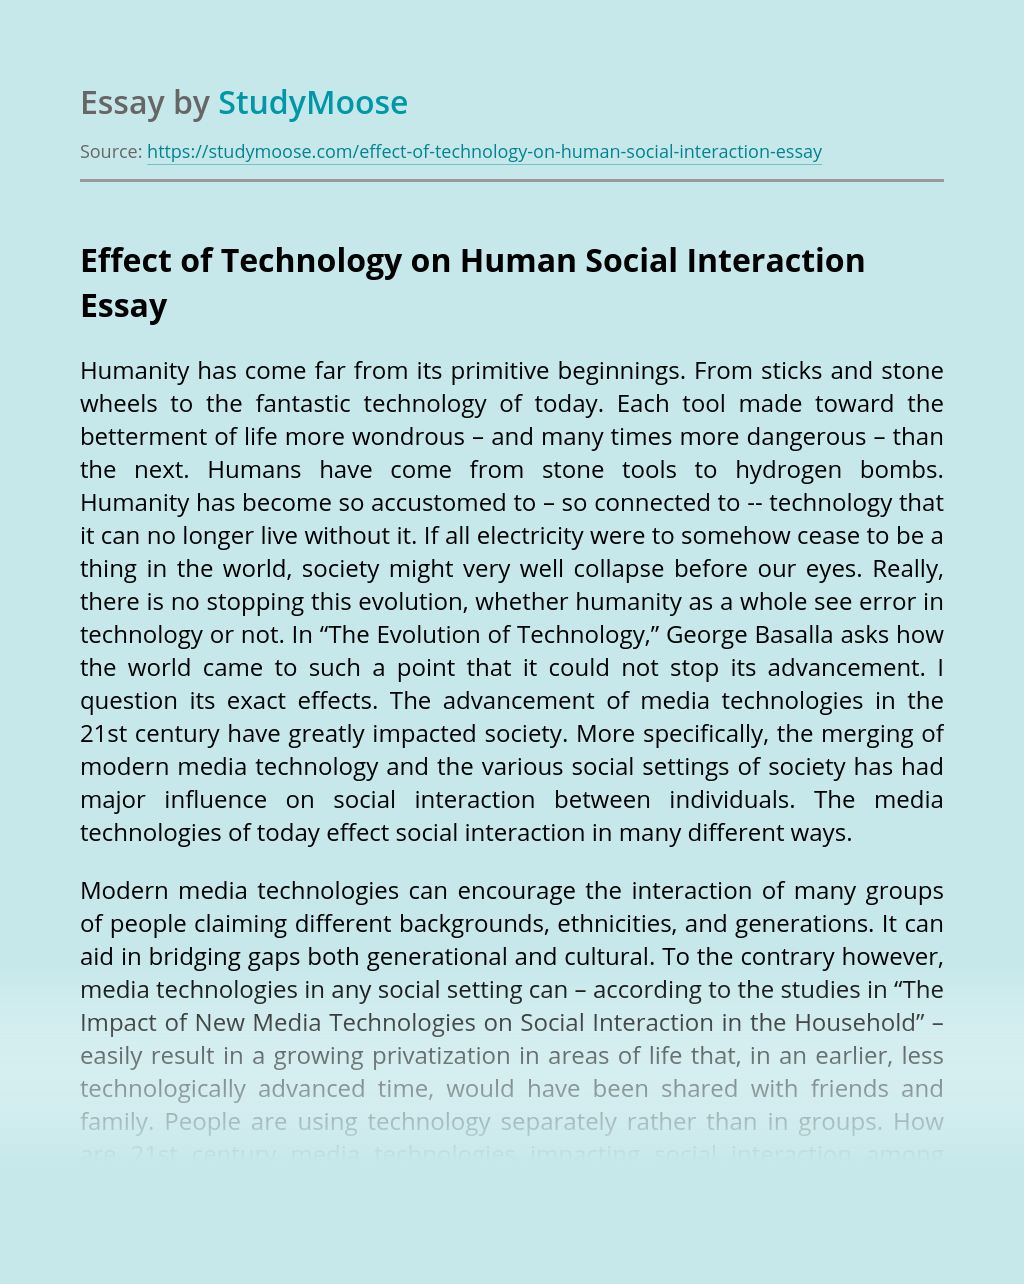 Effect of Technology on Human Social Interaction